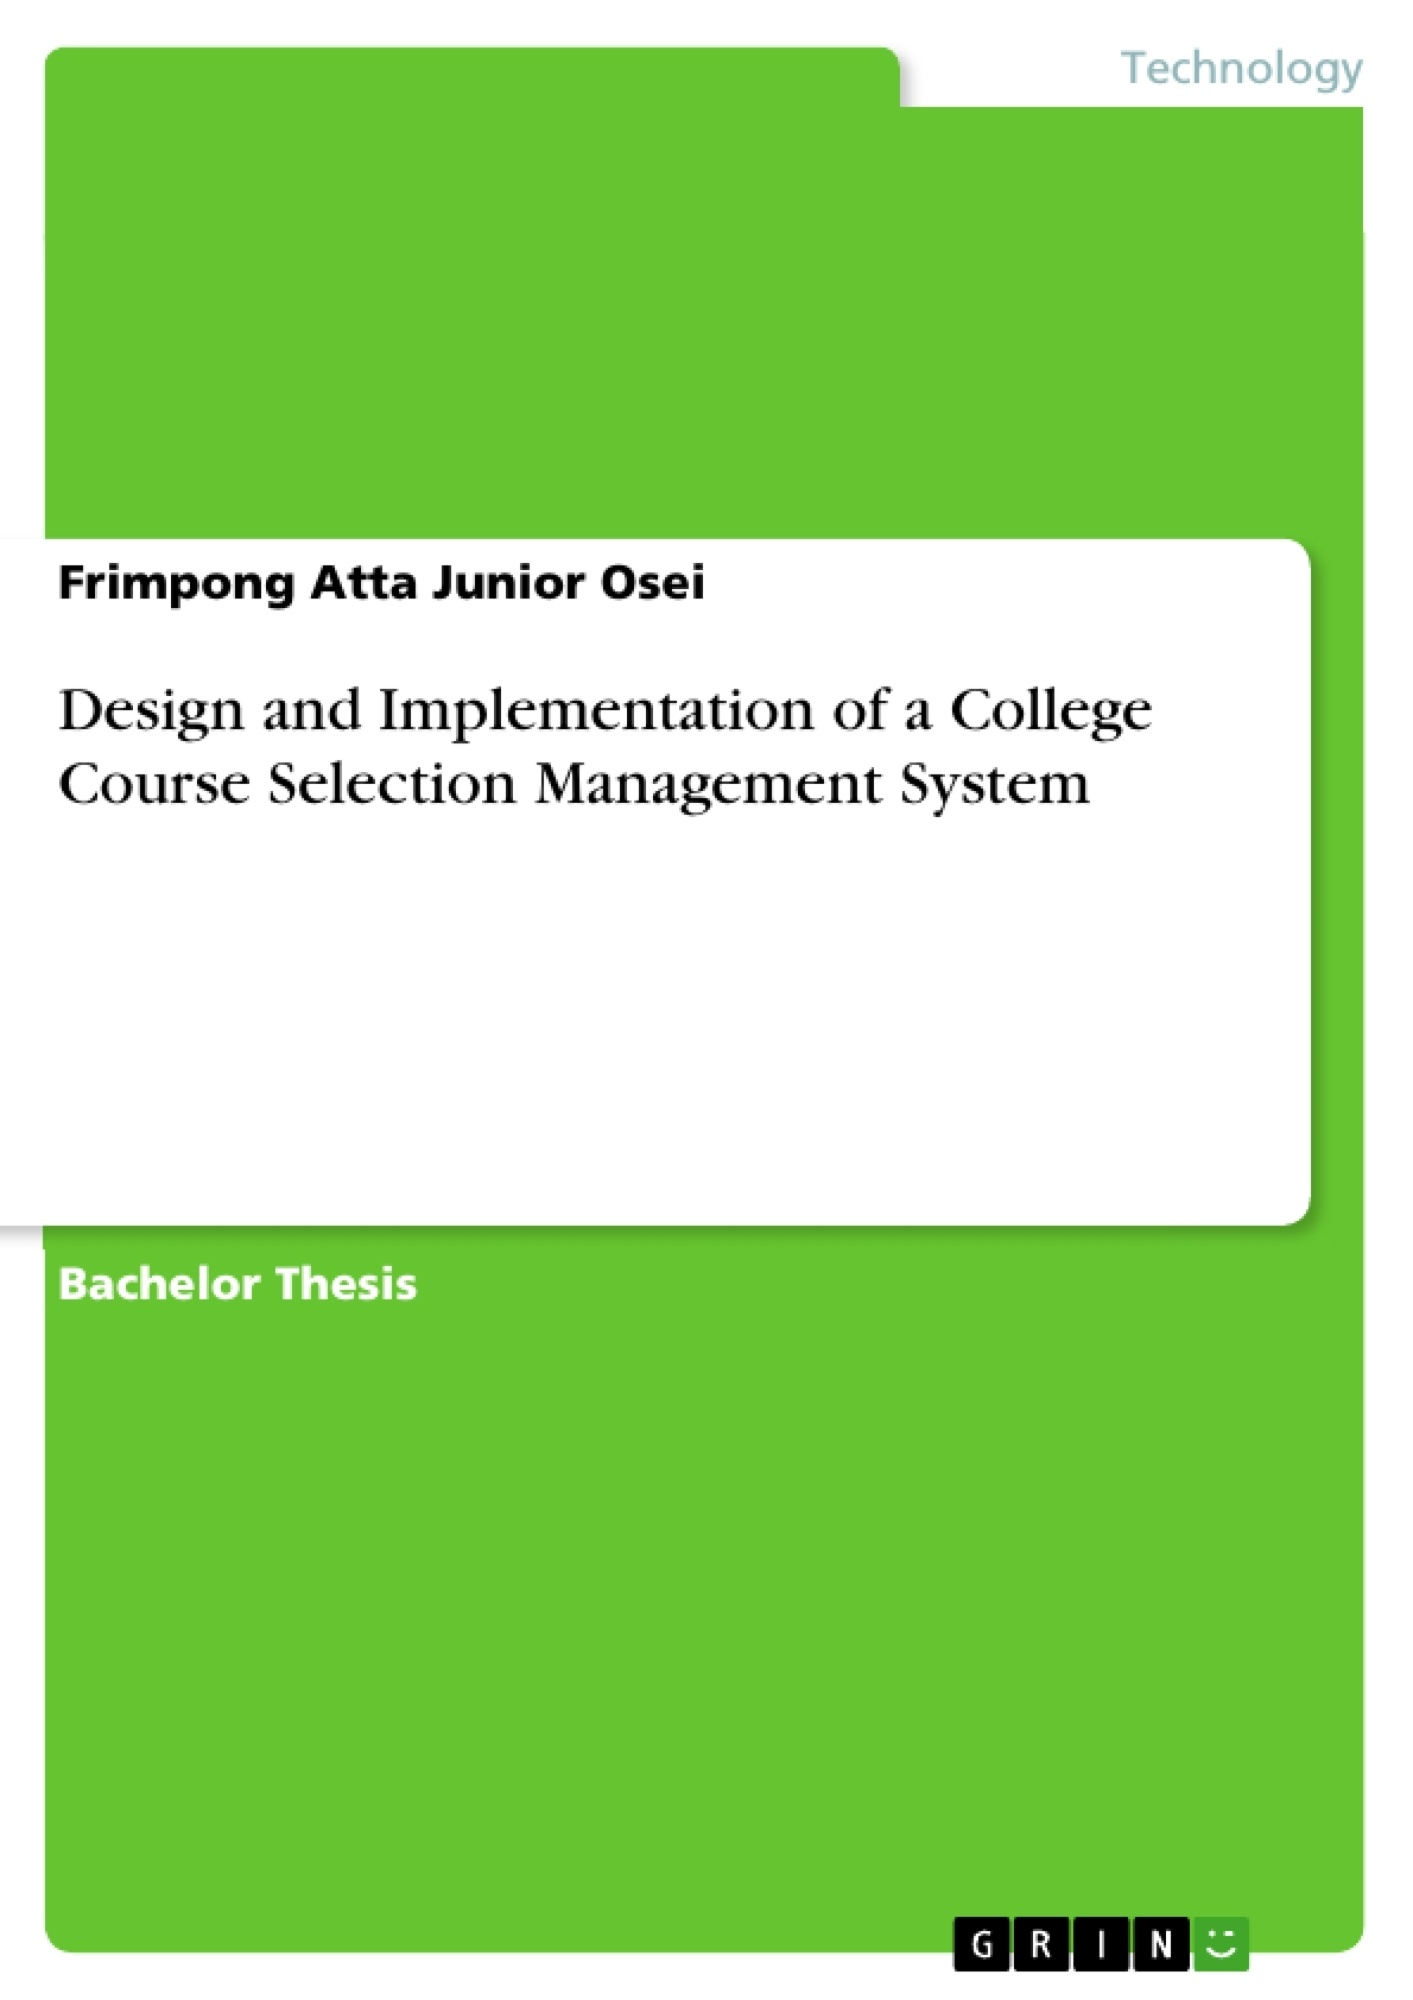 Title: Design and Implementation of a College Course Selection Management System